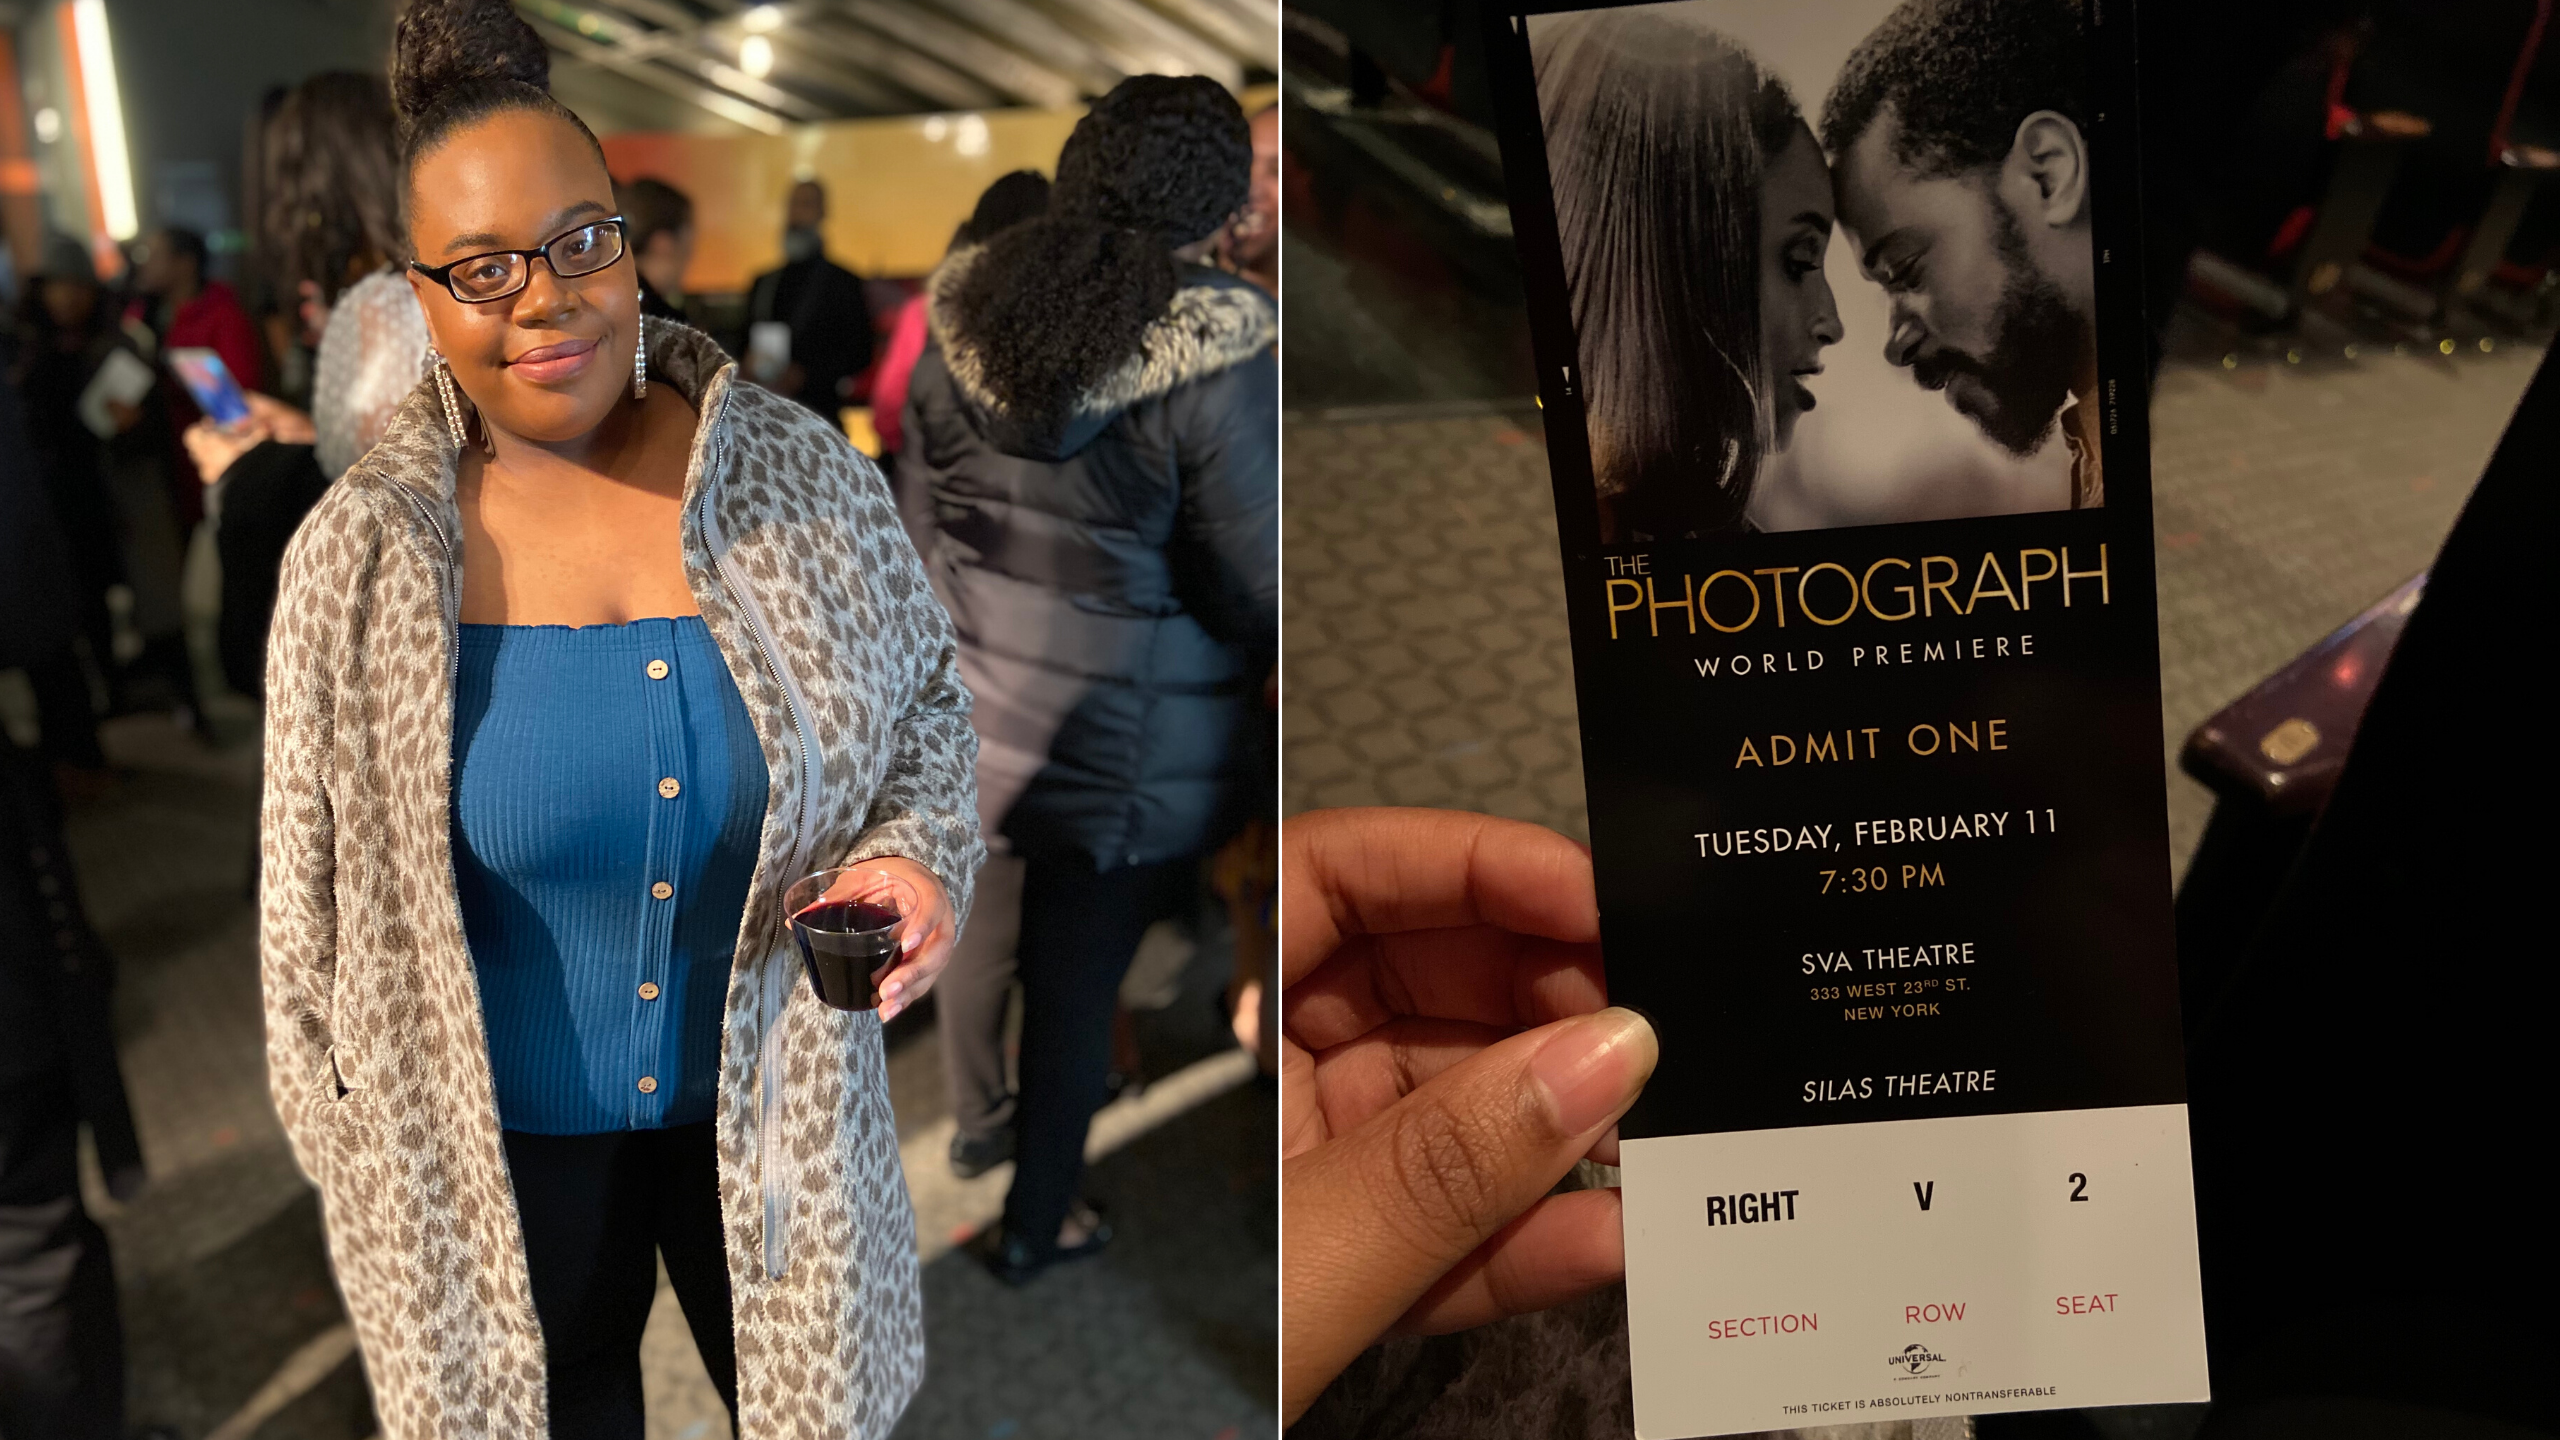 My Experience At The Photograph World Premiere